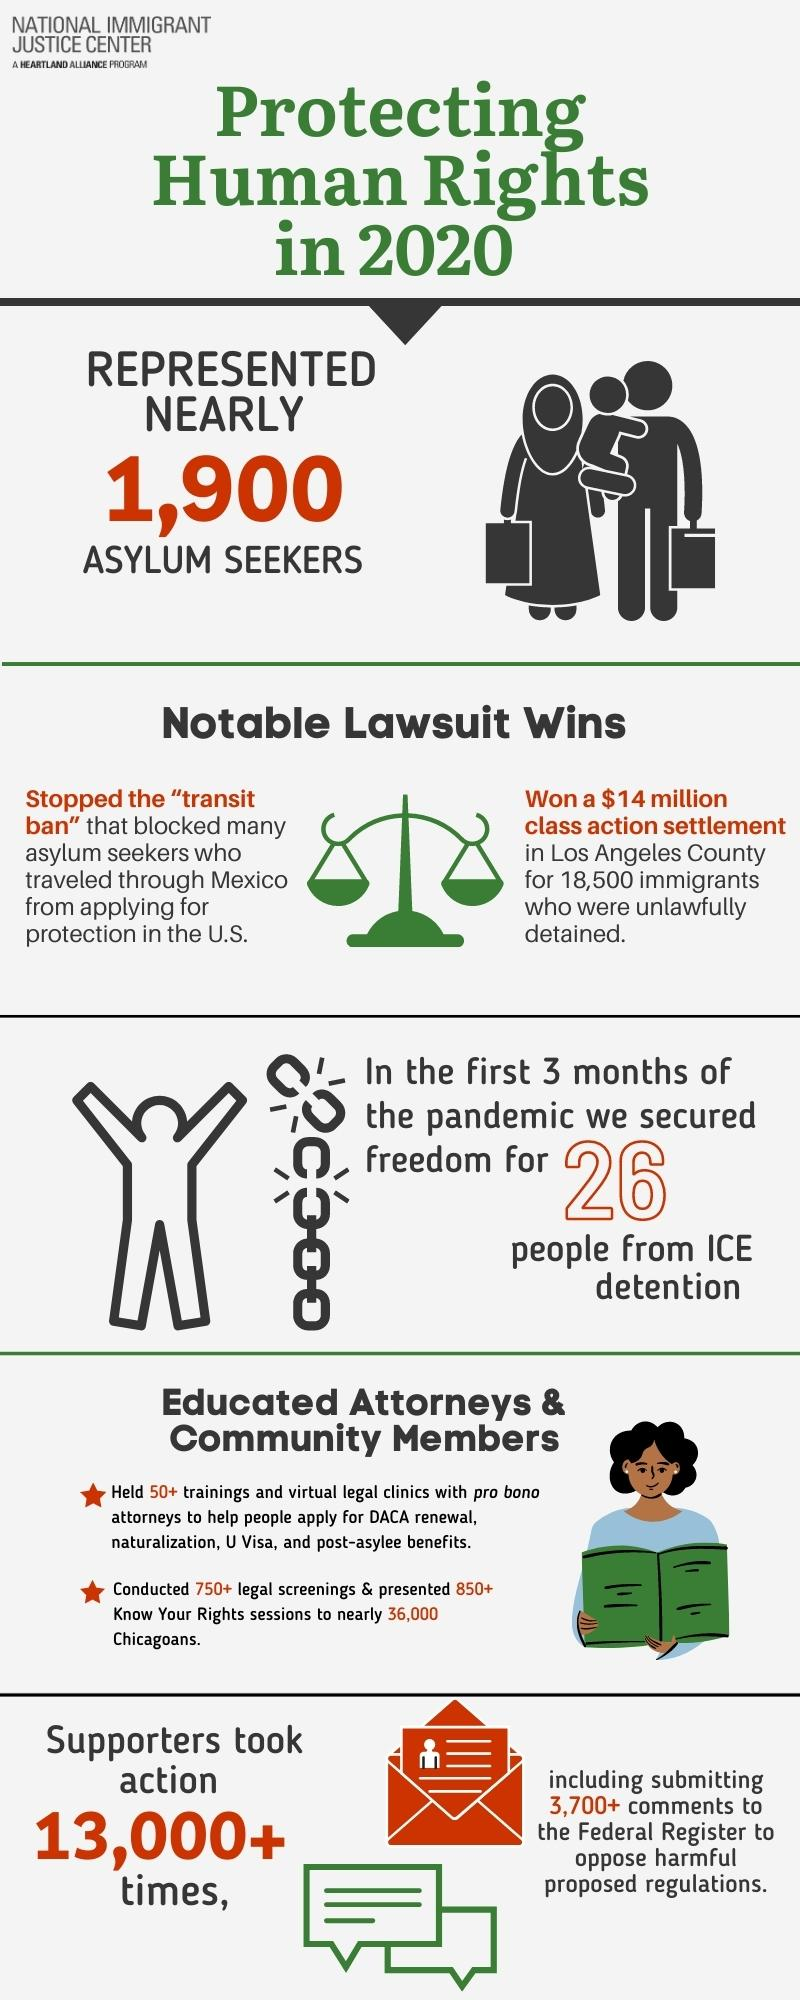 Infographic with stats about ways NIJC and supporters have protected human rights